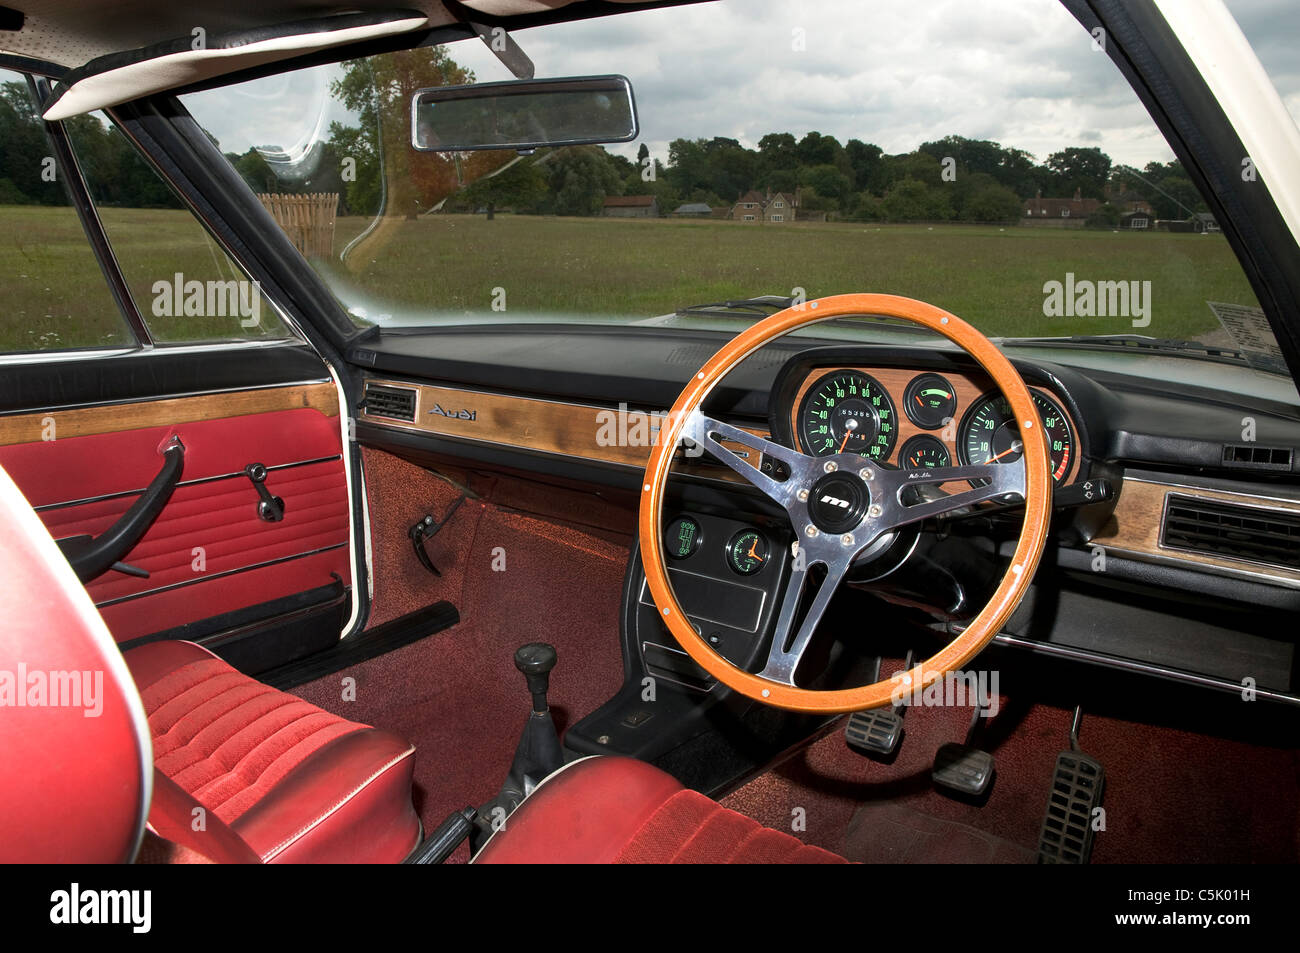 audi 100 coupe s 1973 interior stock photo 37911149 alamy. Black Bedroom Furniture Sets. Home Design Ideas